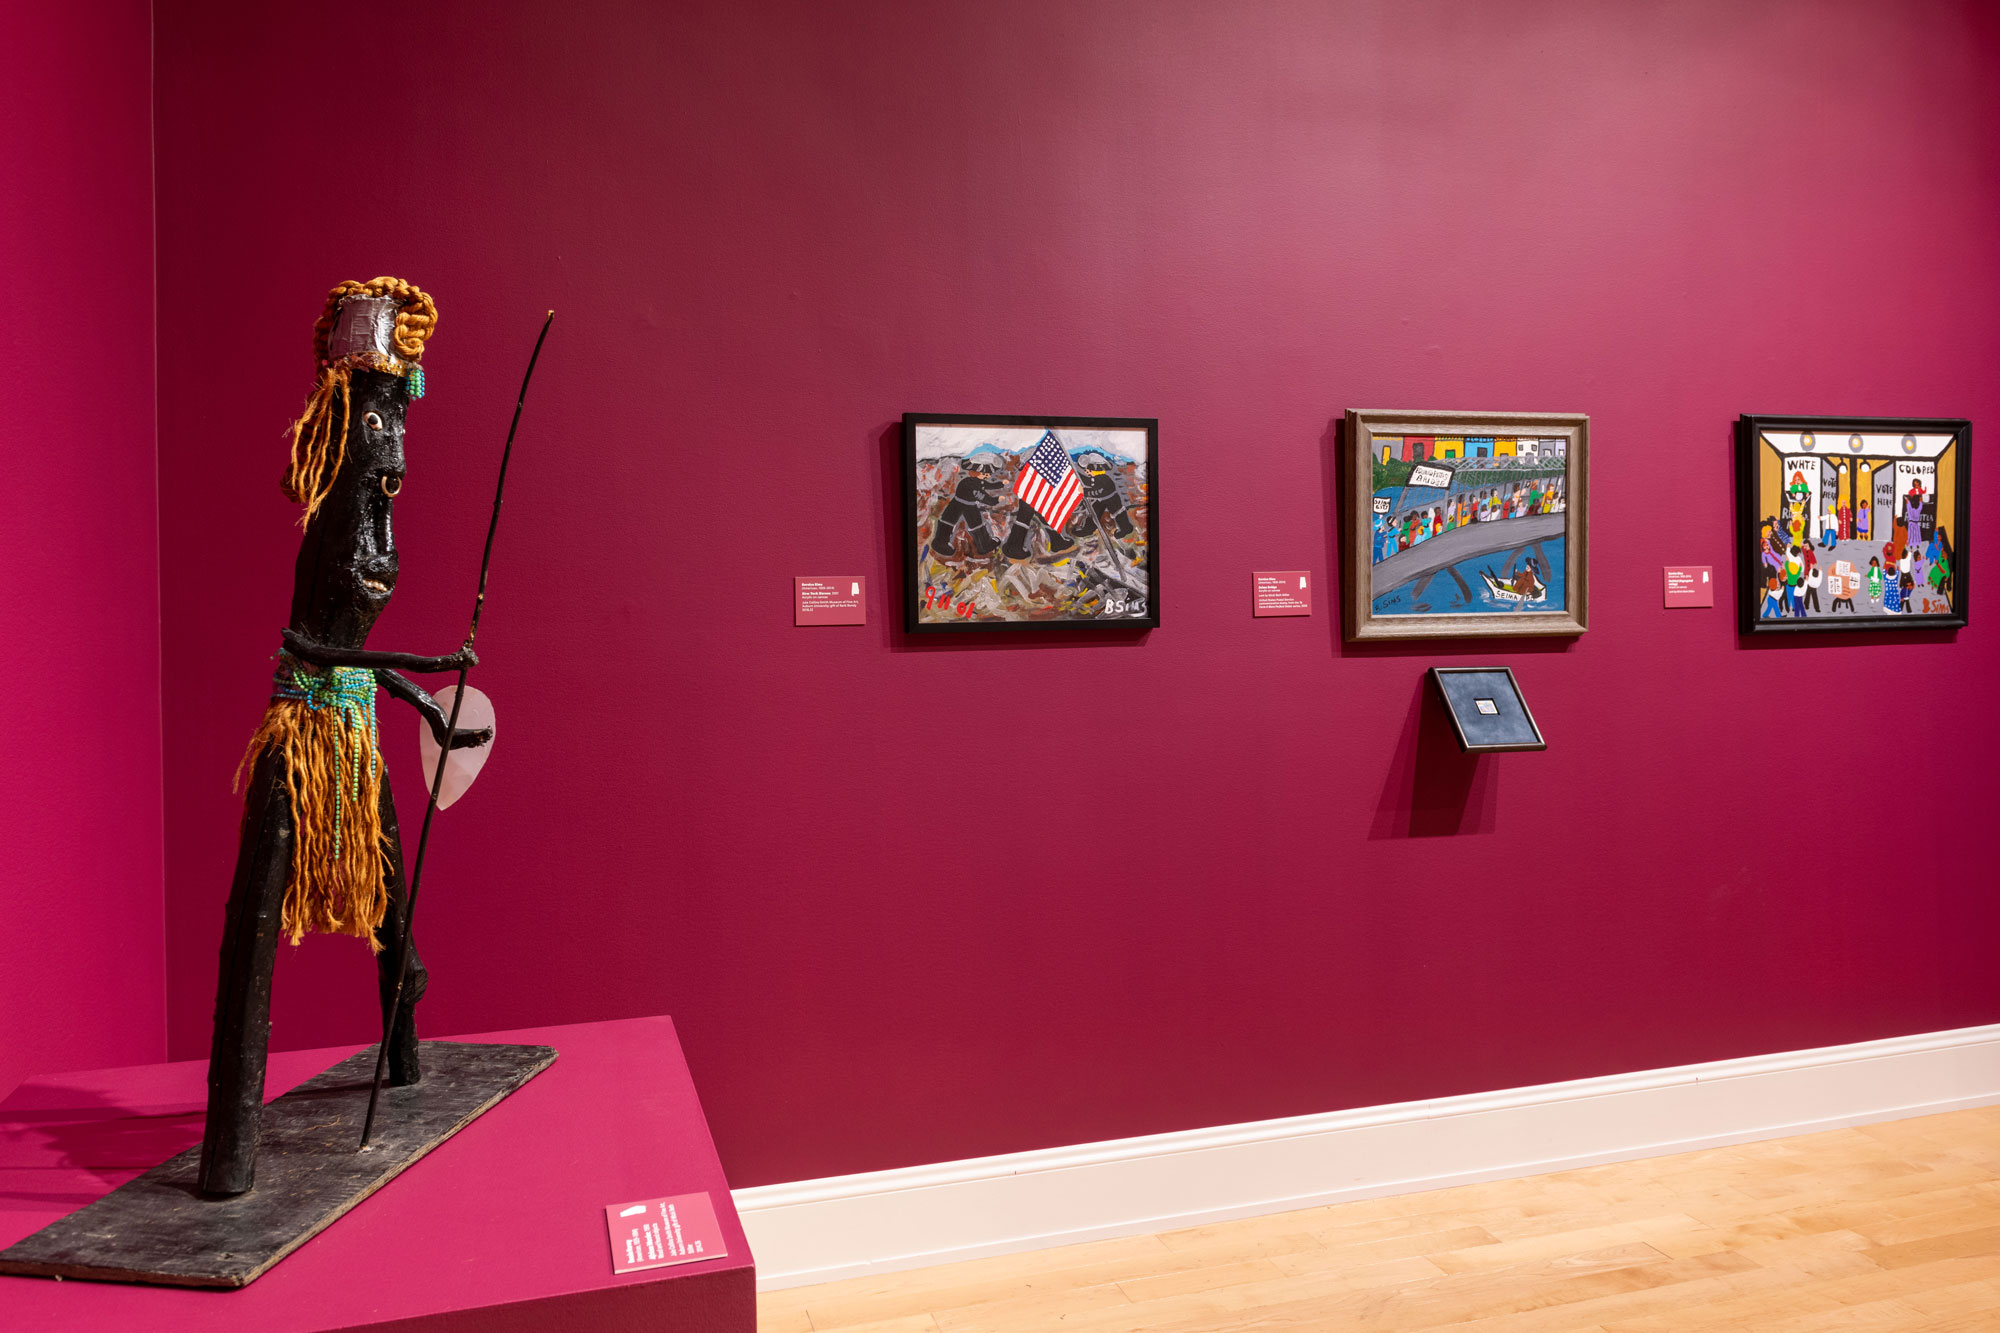 African-inspired statue amidst folk art paintings.